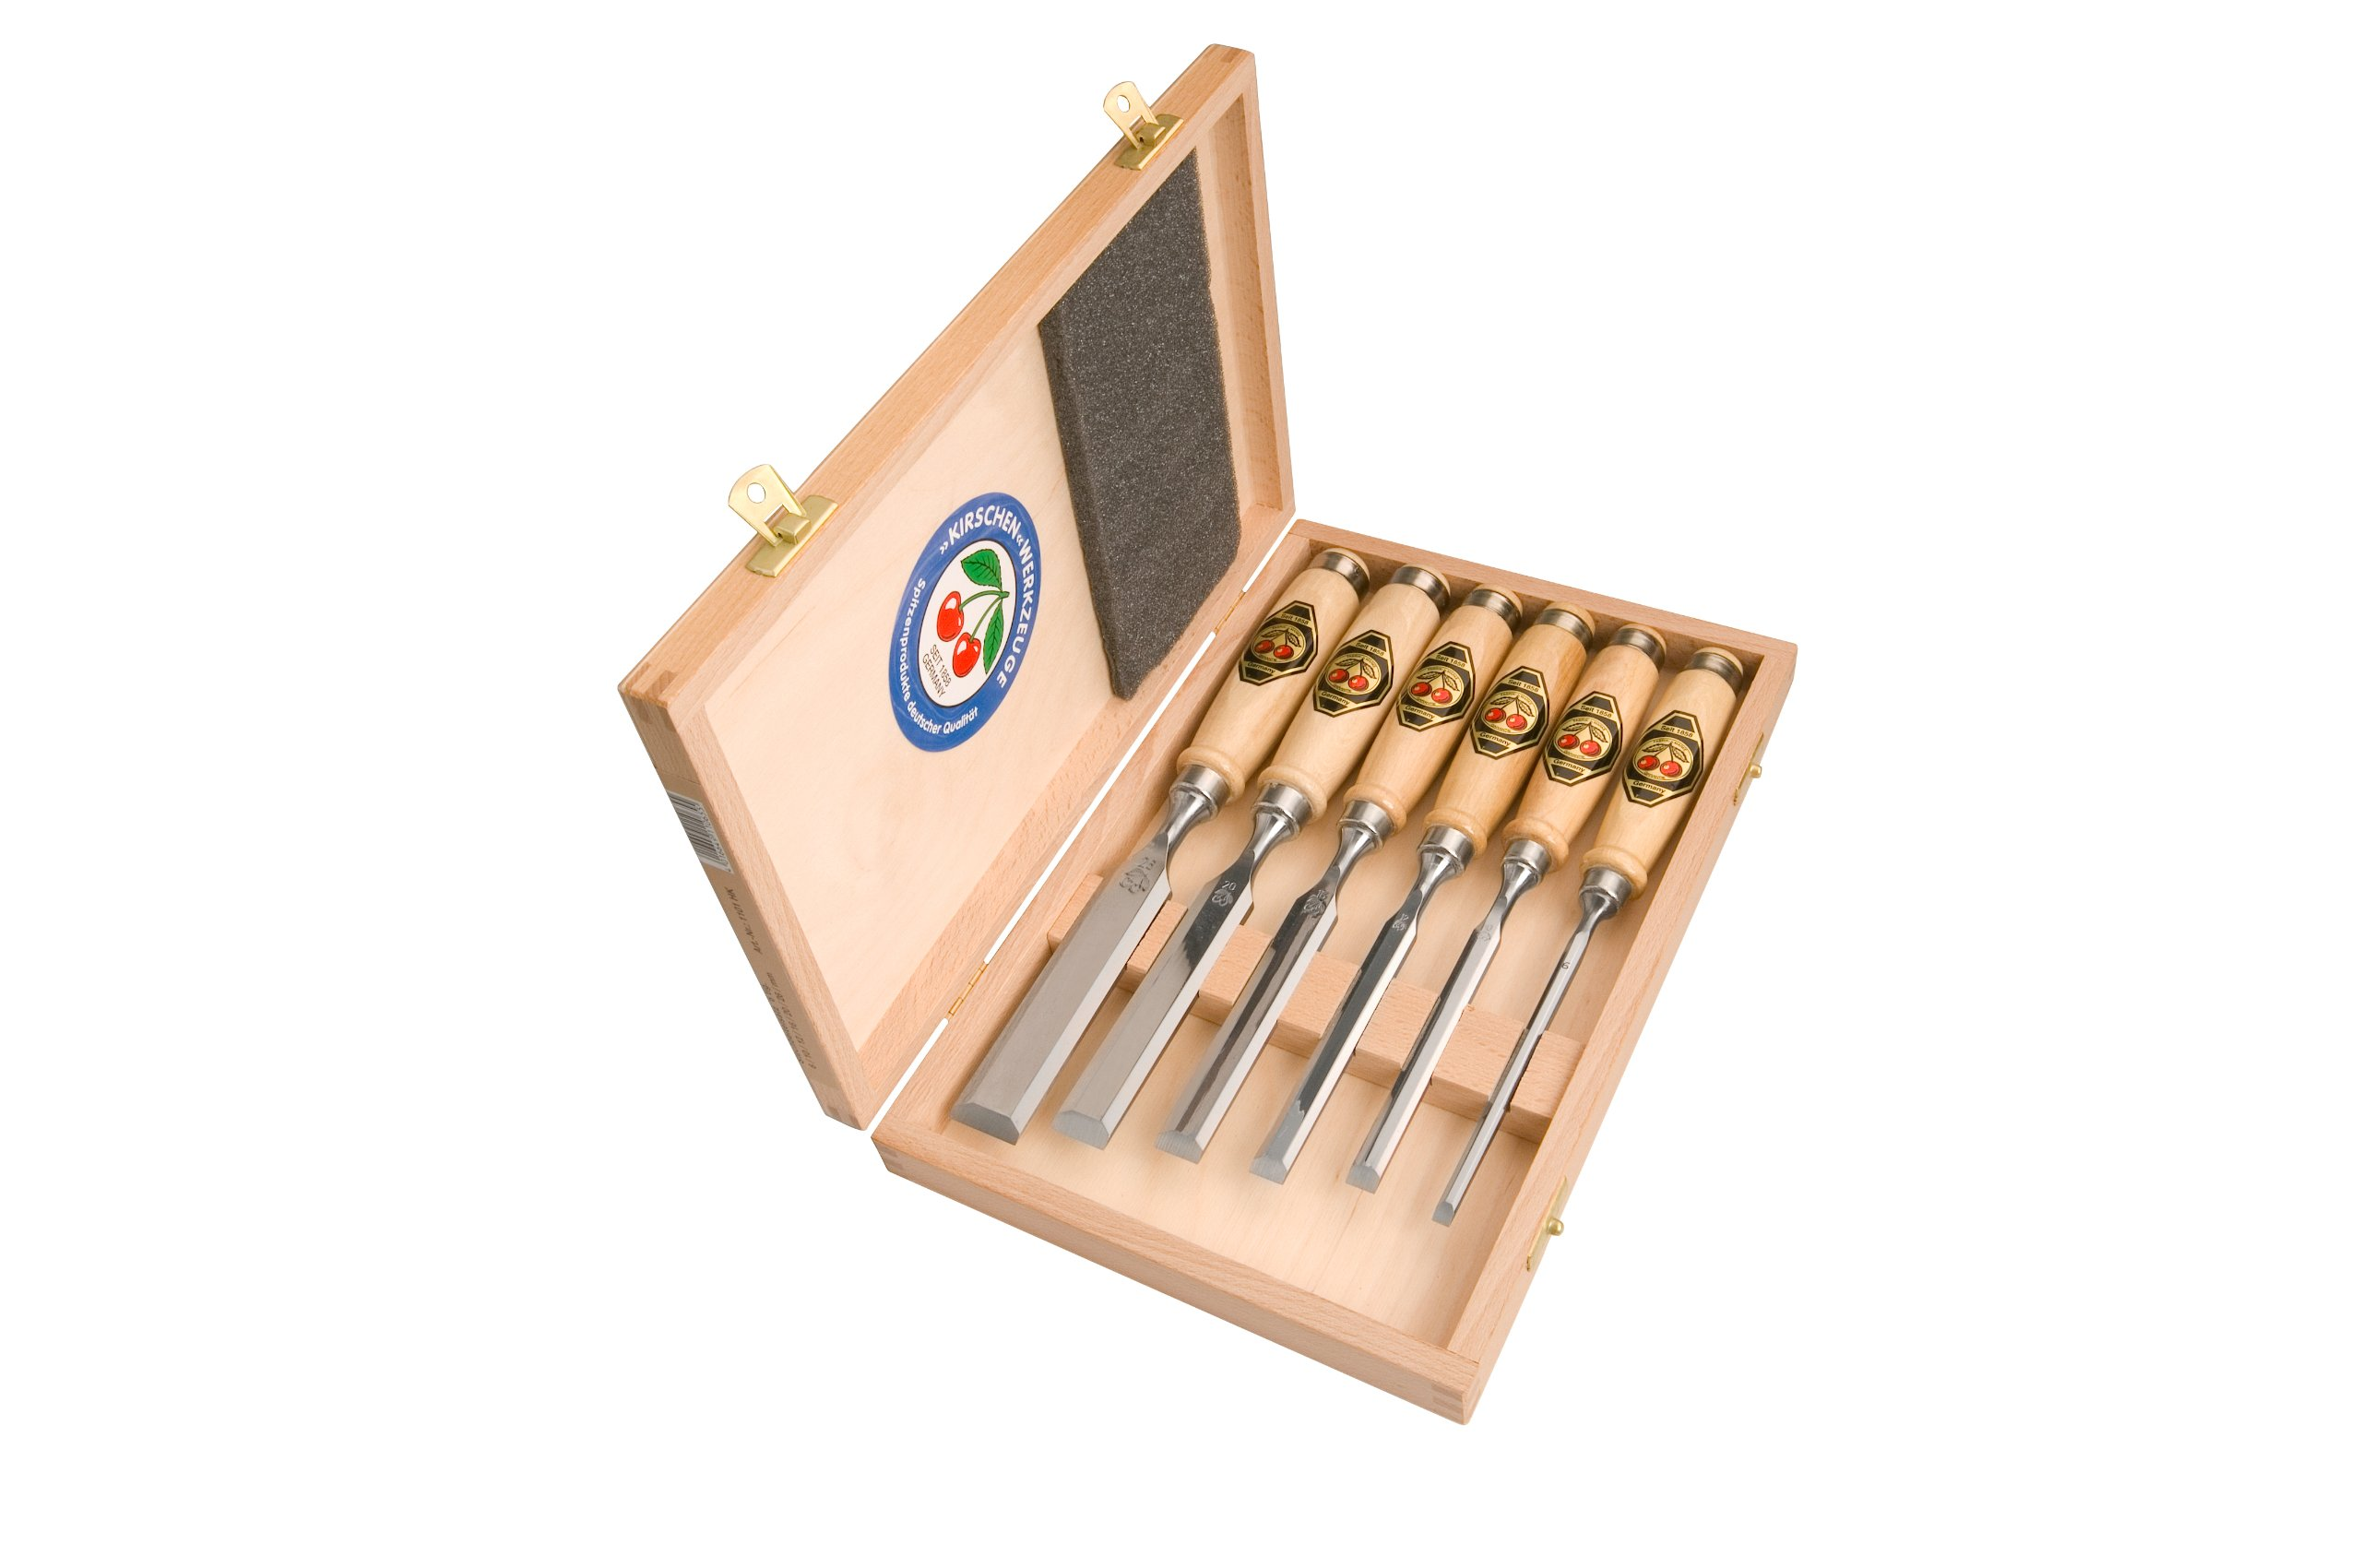 Two Cherries 500-1561 6-Piece Chisel Set in Wood Box by Two Cherries